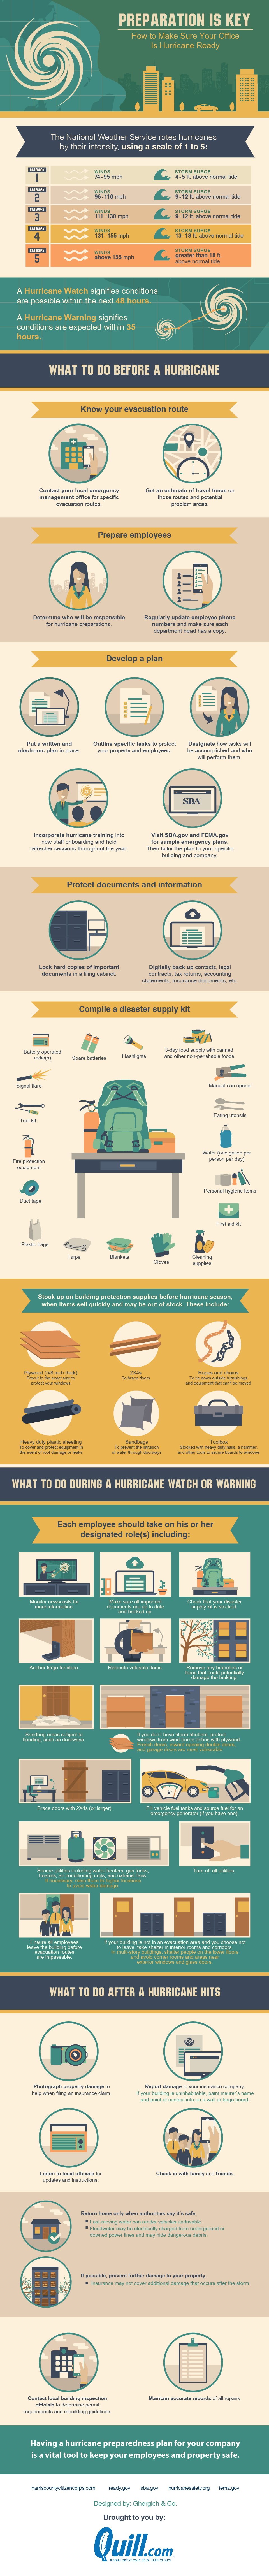 Preparation is Key: How to Make Sure Your Office is Hurricane Ready [Infographic]